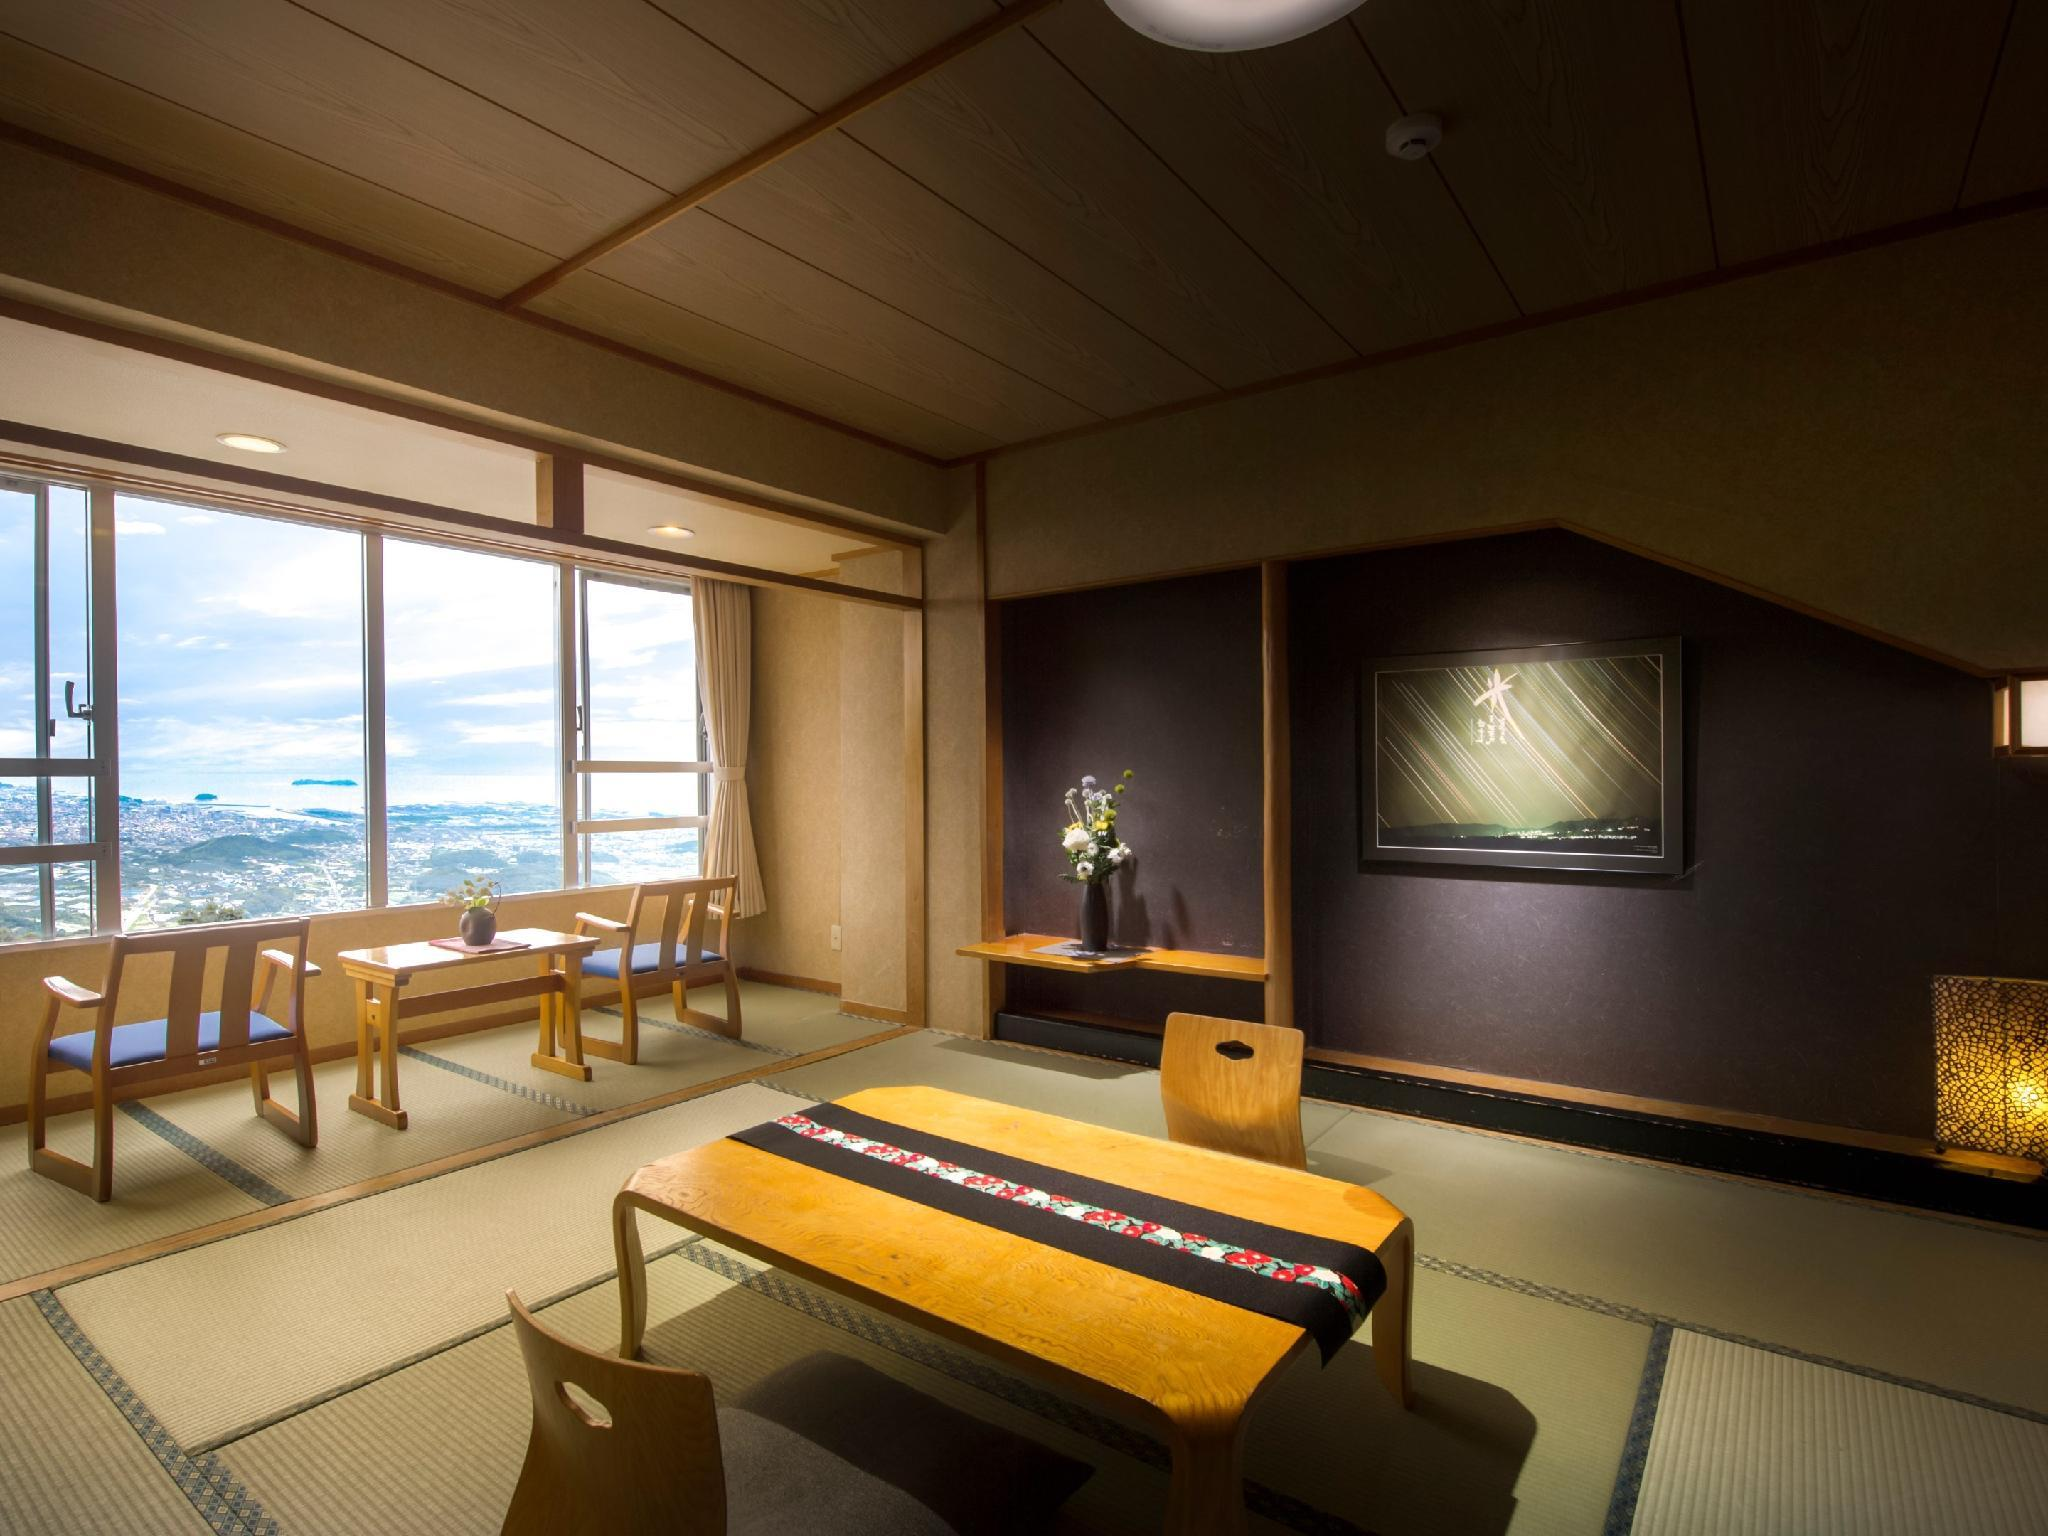 南星宮 和式房(10帖榻榻米)*無浴室 (Nanseikyu Japanese-style Room(10 tatami)*No bath in room)